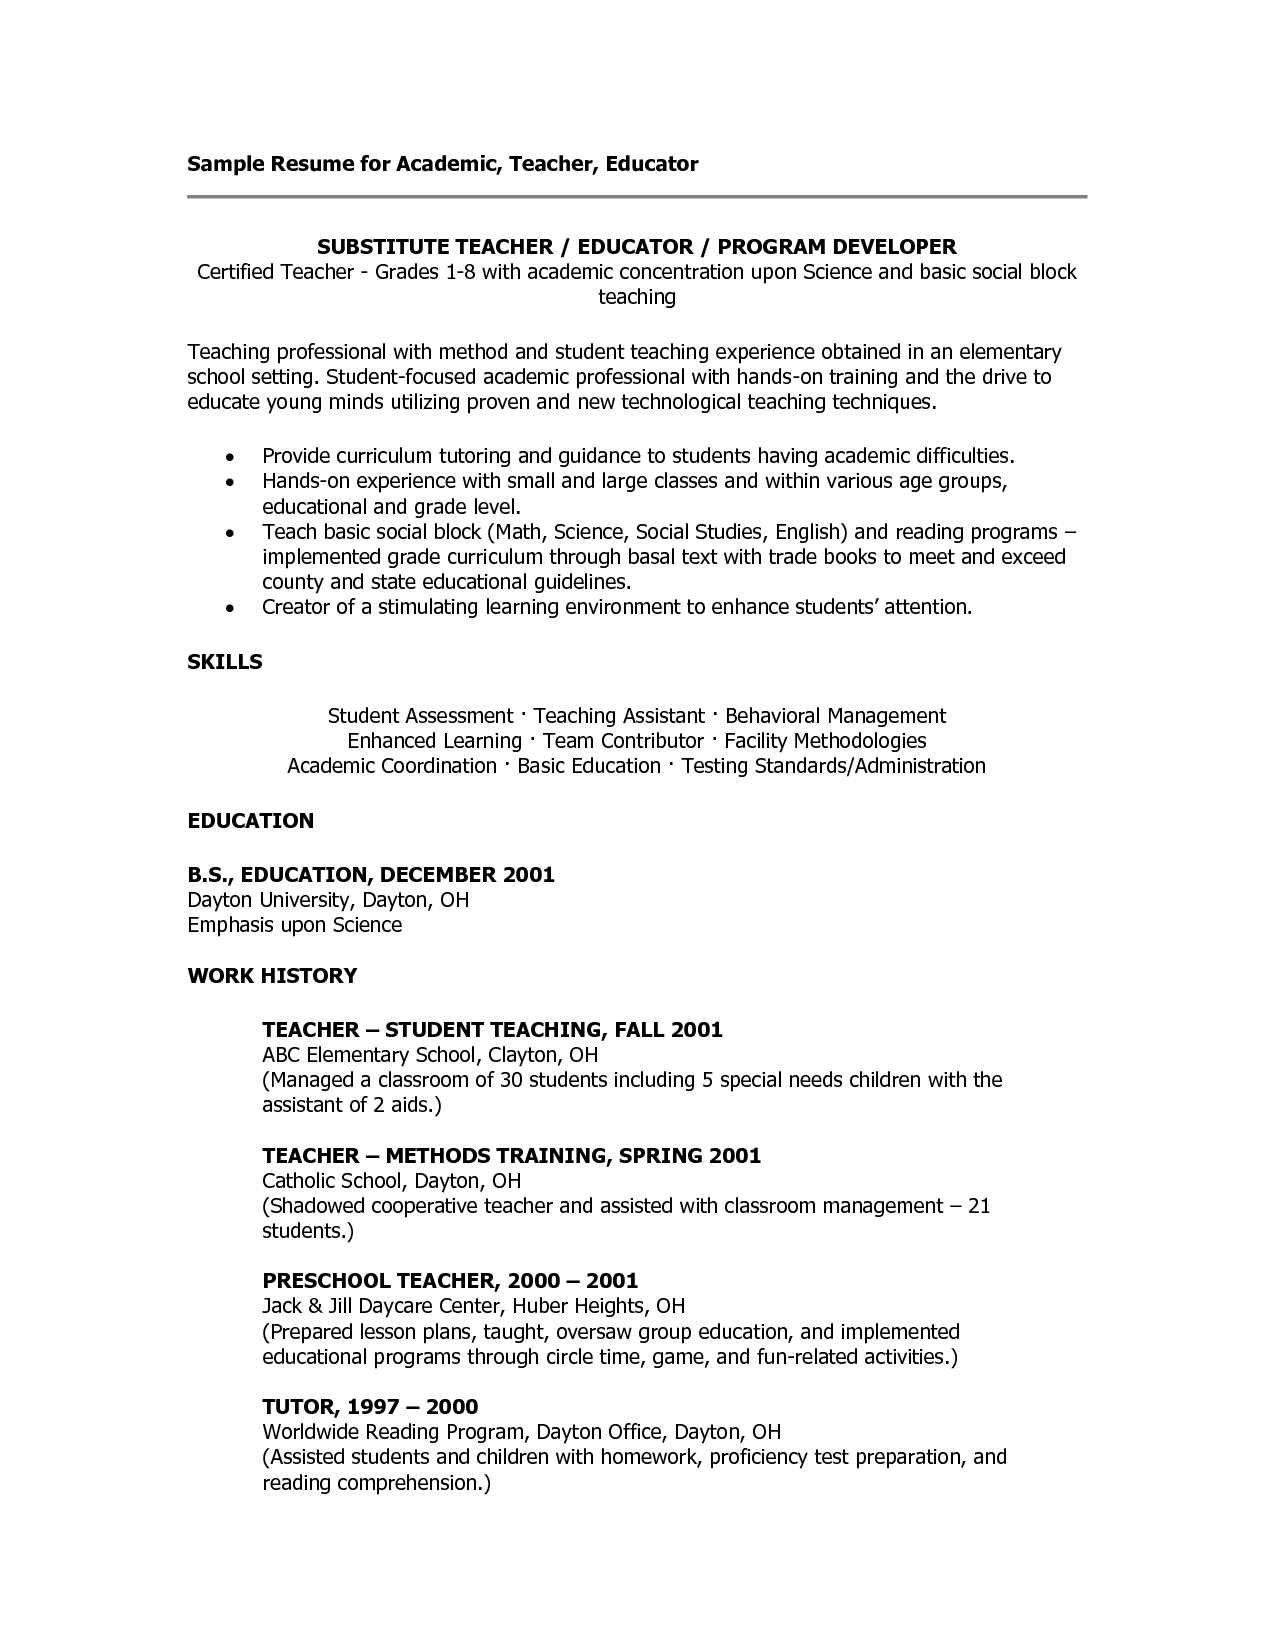 Charming Sample Teacher Resumes | Substitute Teacher Resume  Social Studies Teacher Resume